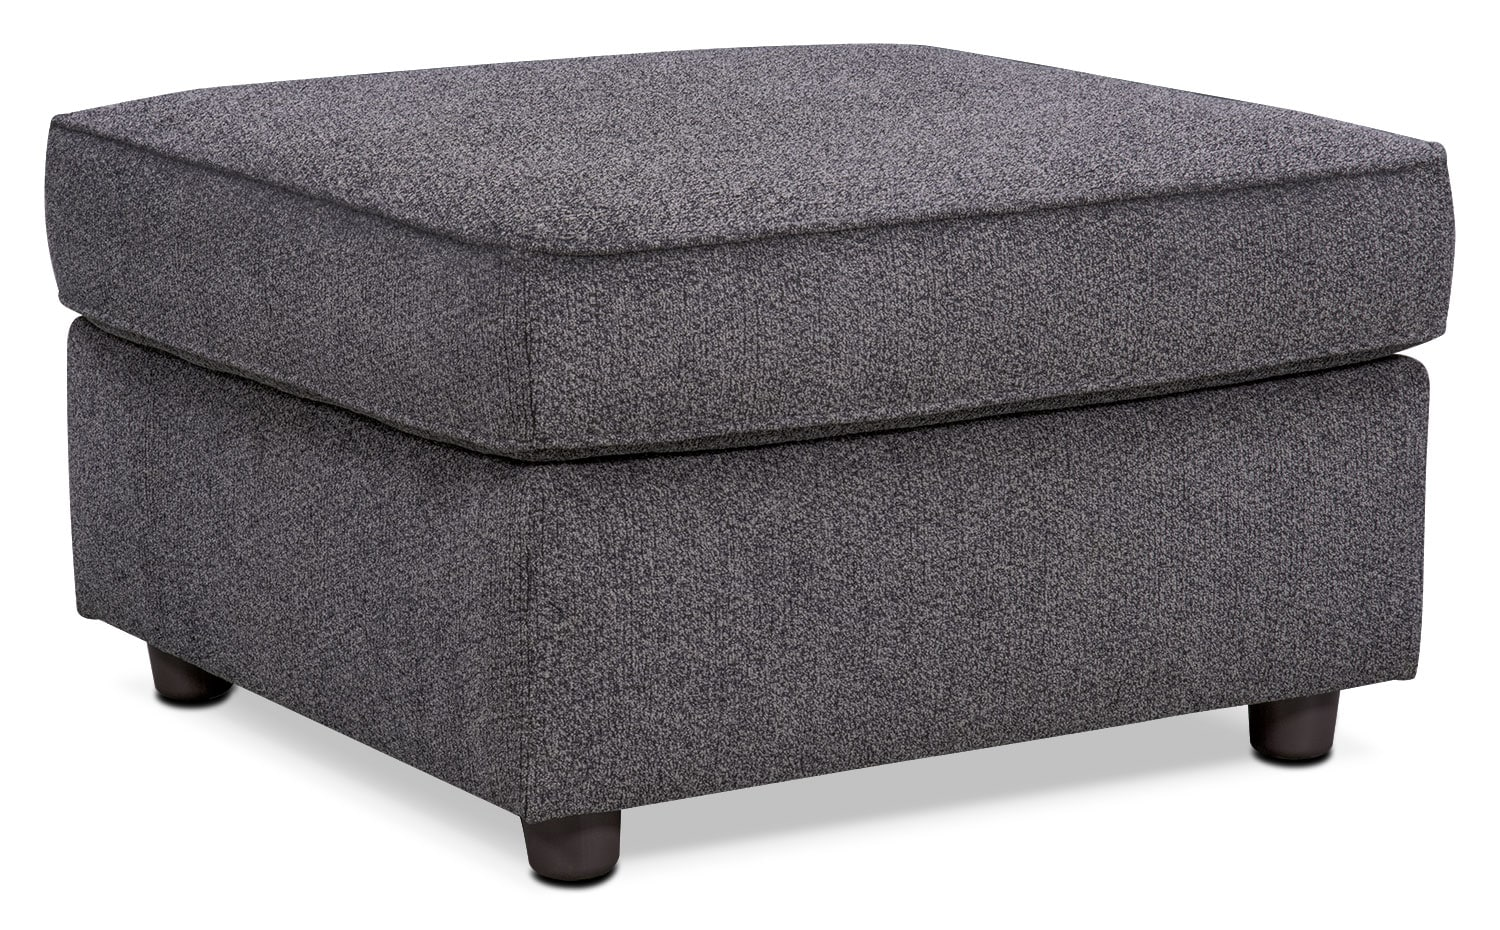 Lakelyn Ottoman - Charcoal